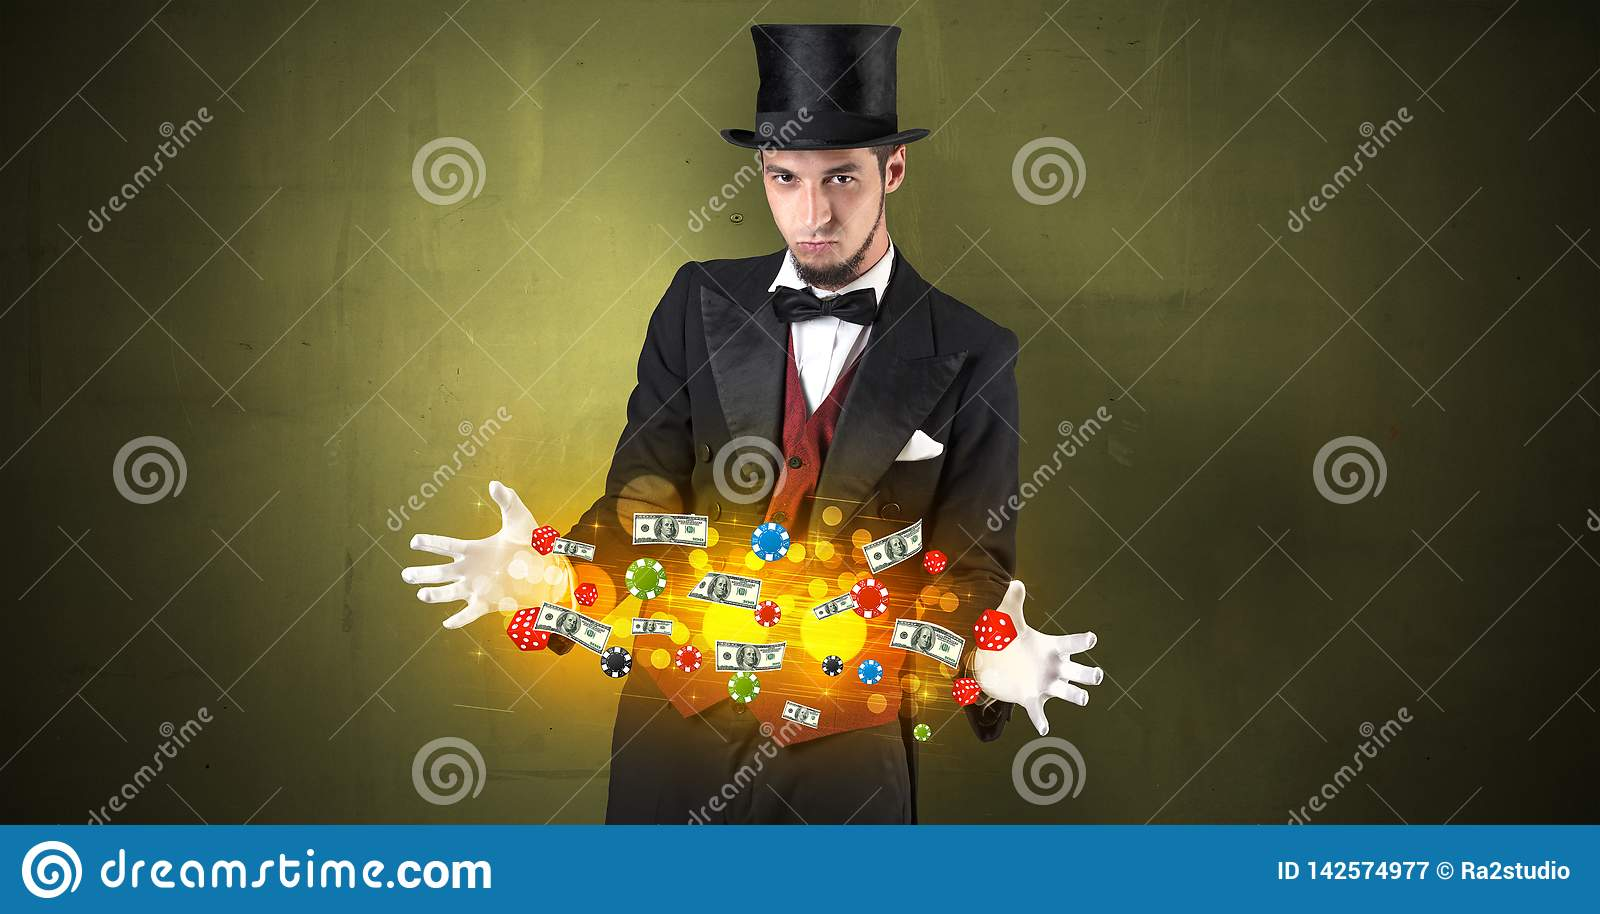 Illusionist conjure with his hand gambling staffs